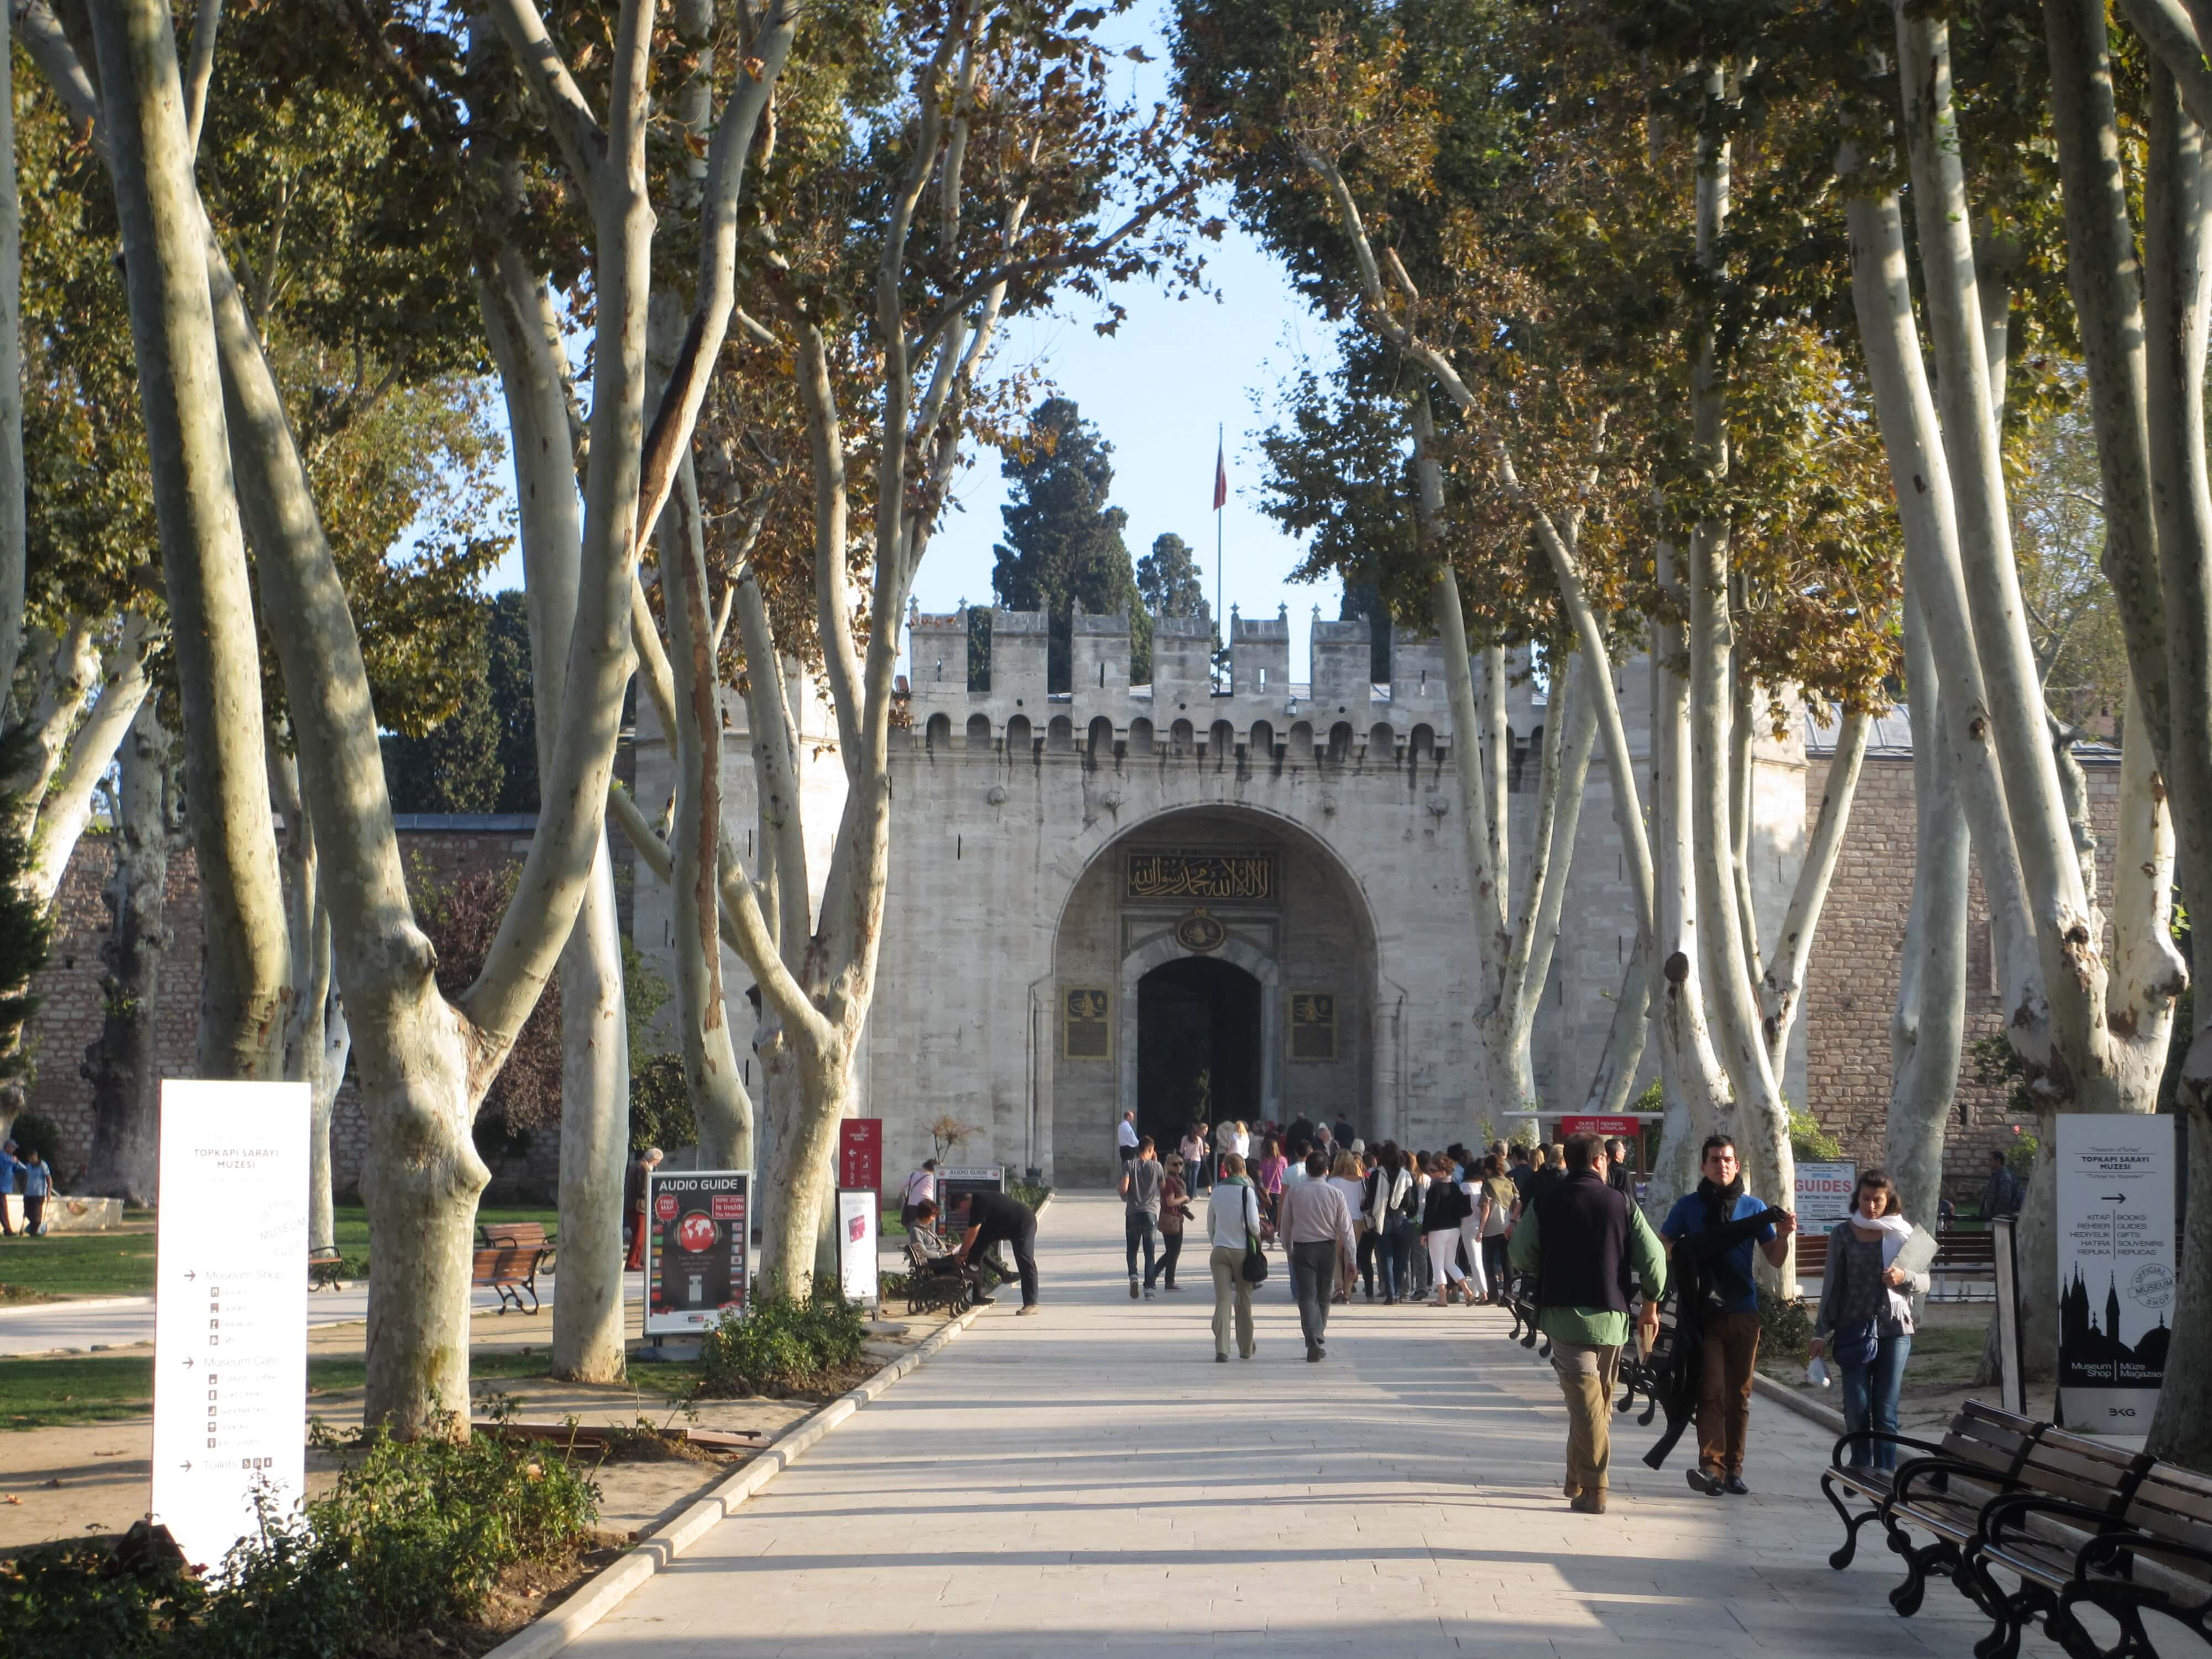 pathway and trees leading to the entrance of the Topkapi Palace gateway in Istanbul